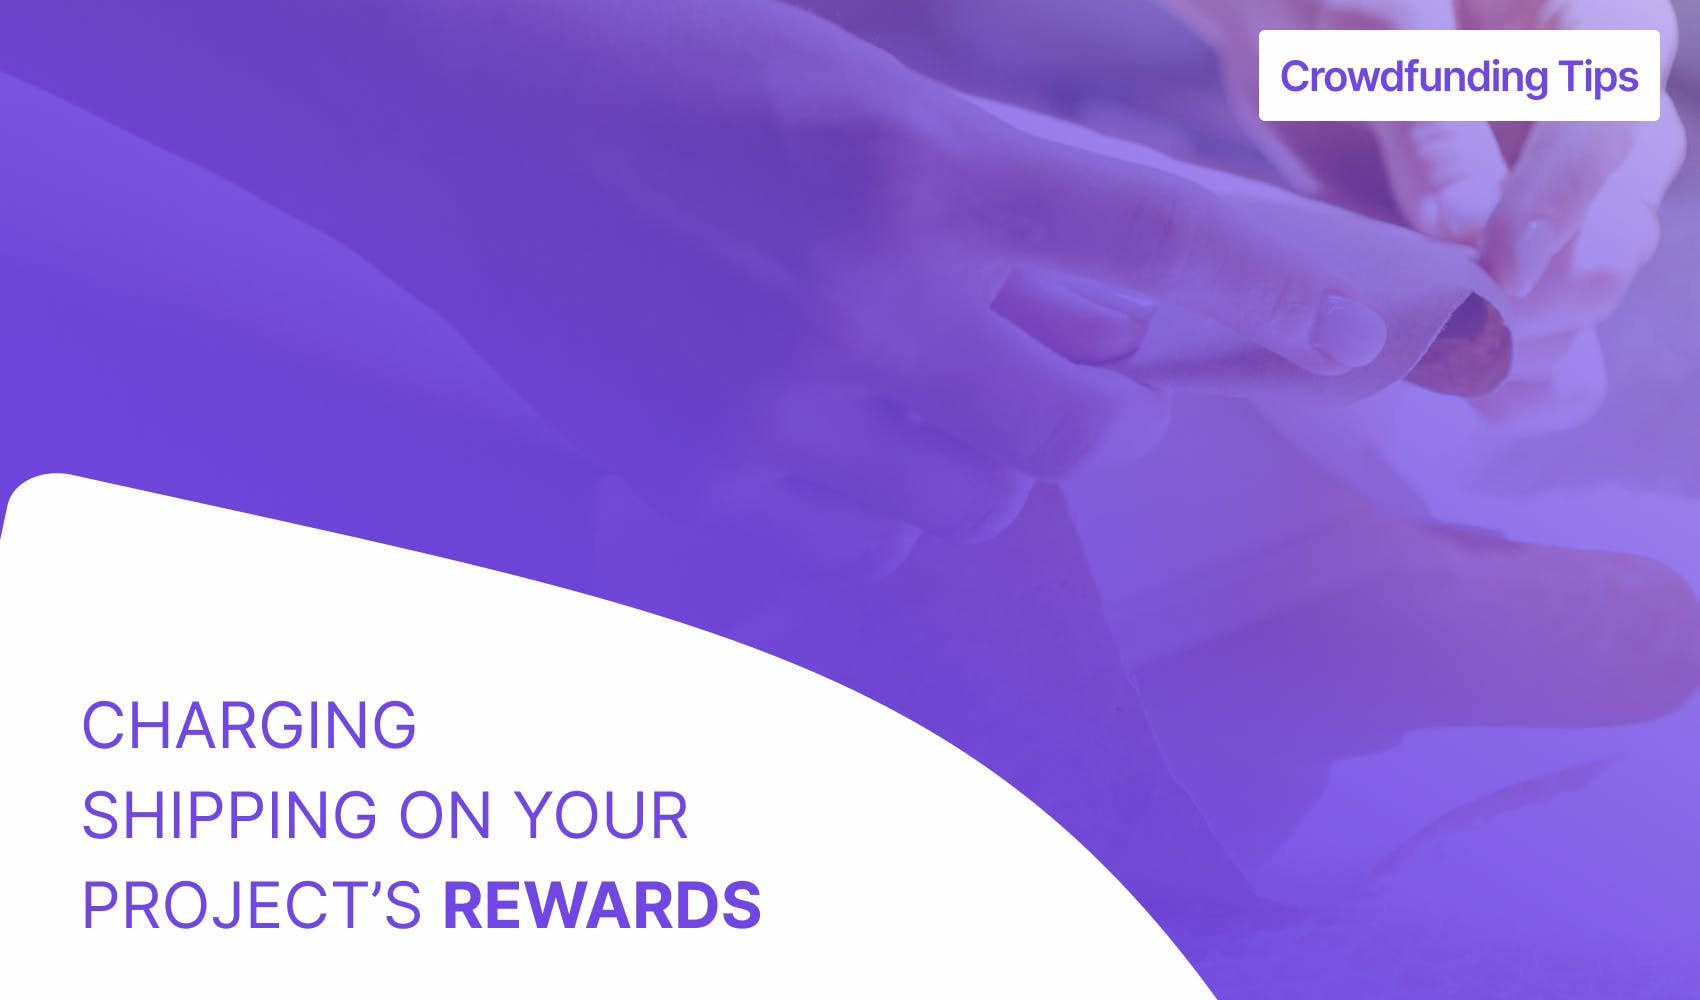 charging shipping on your project's rewards